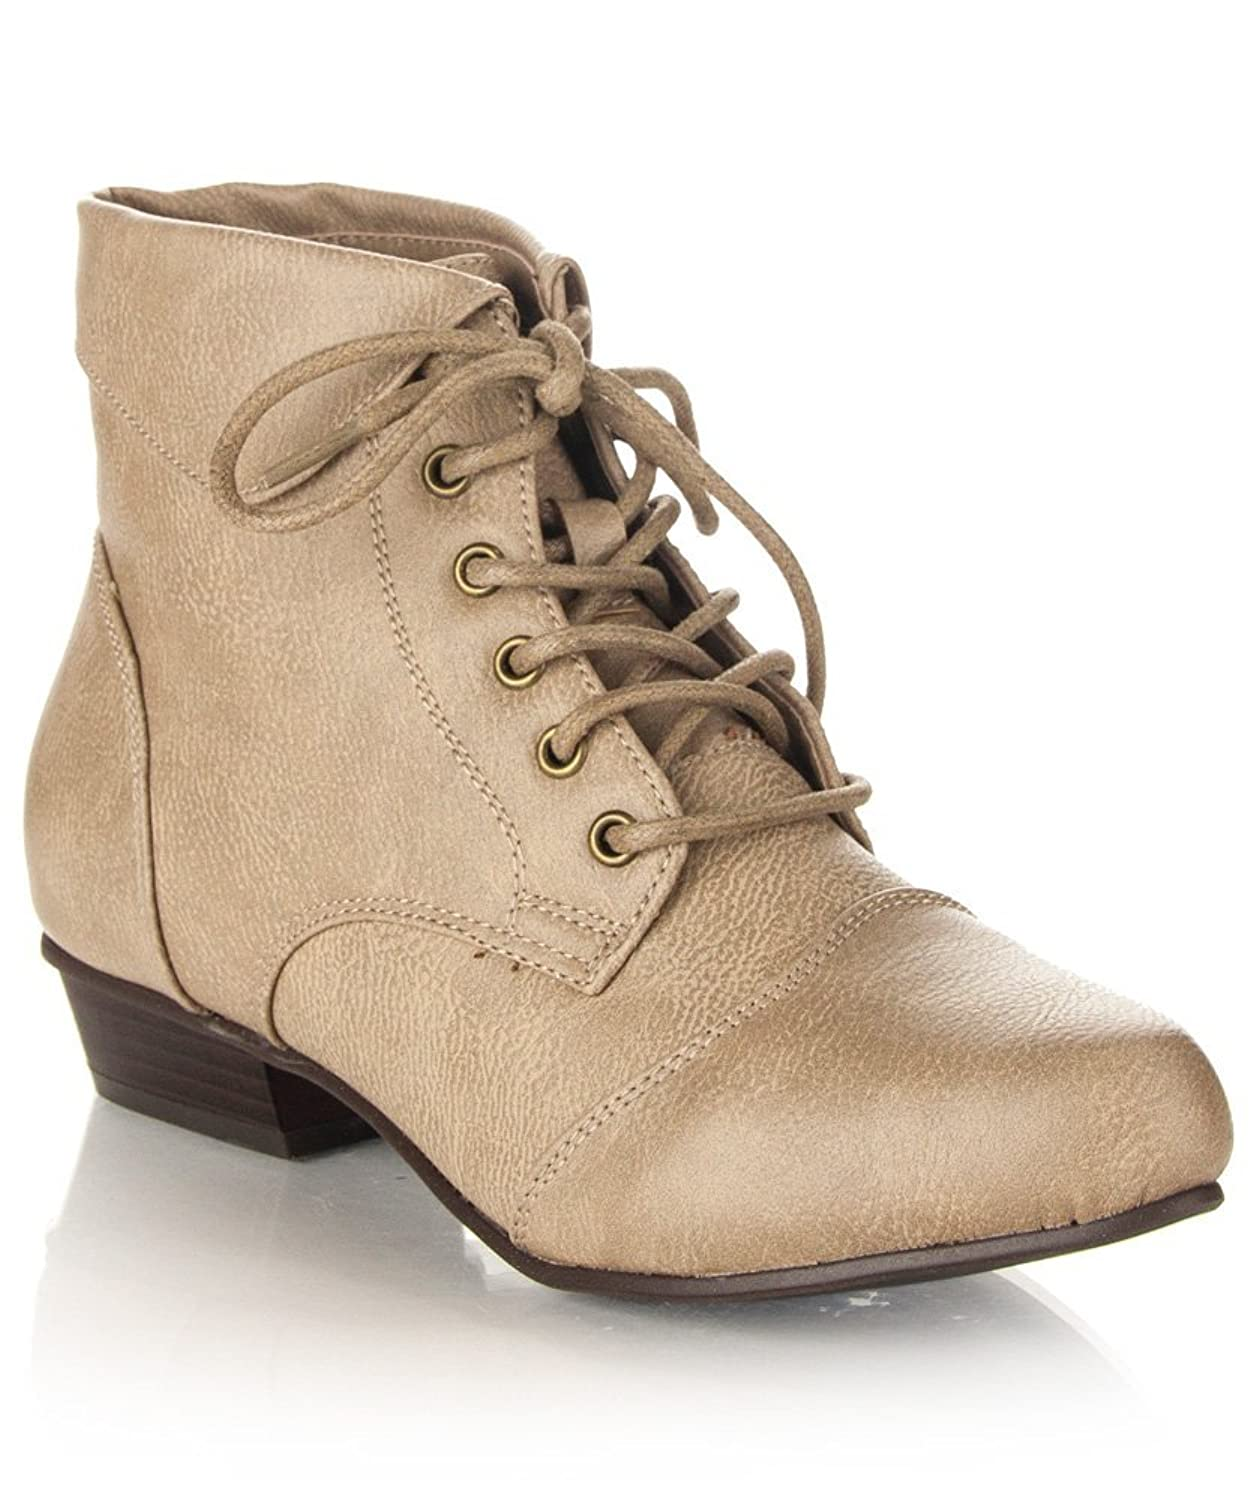 Ladies Victorian Boots & Shoes Womens Pointy Toe Oxford Low Chunky Heel Lace Up Ankle Bootie Boots With Collar Flip Over $24.99 AT vintagedancer.com